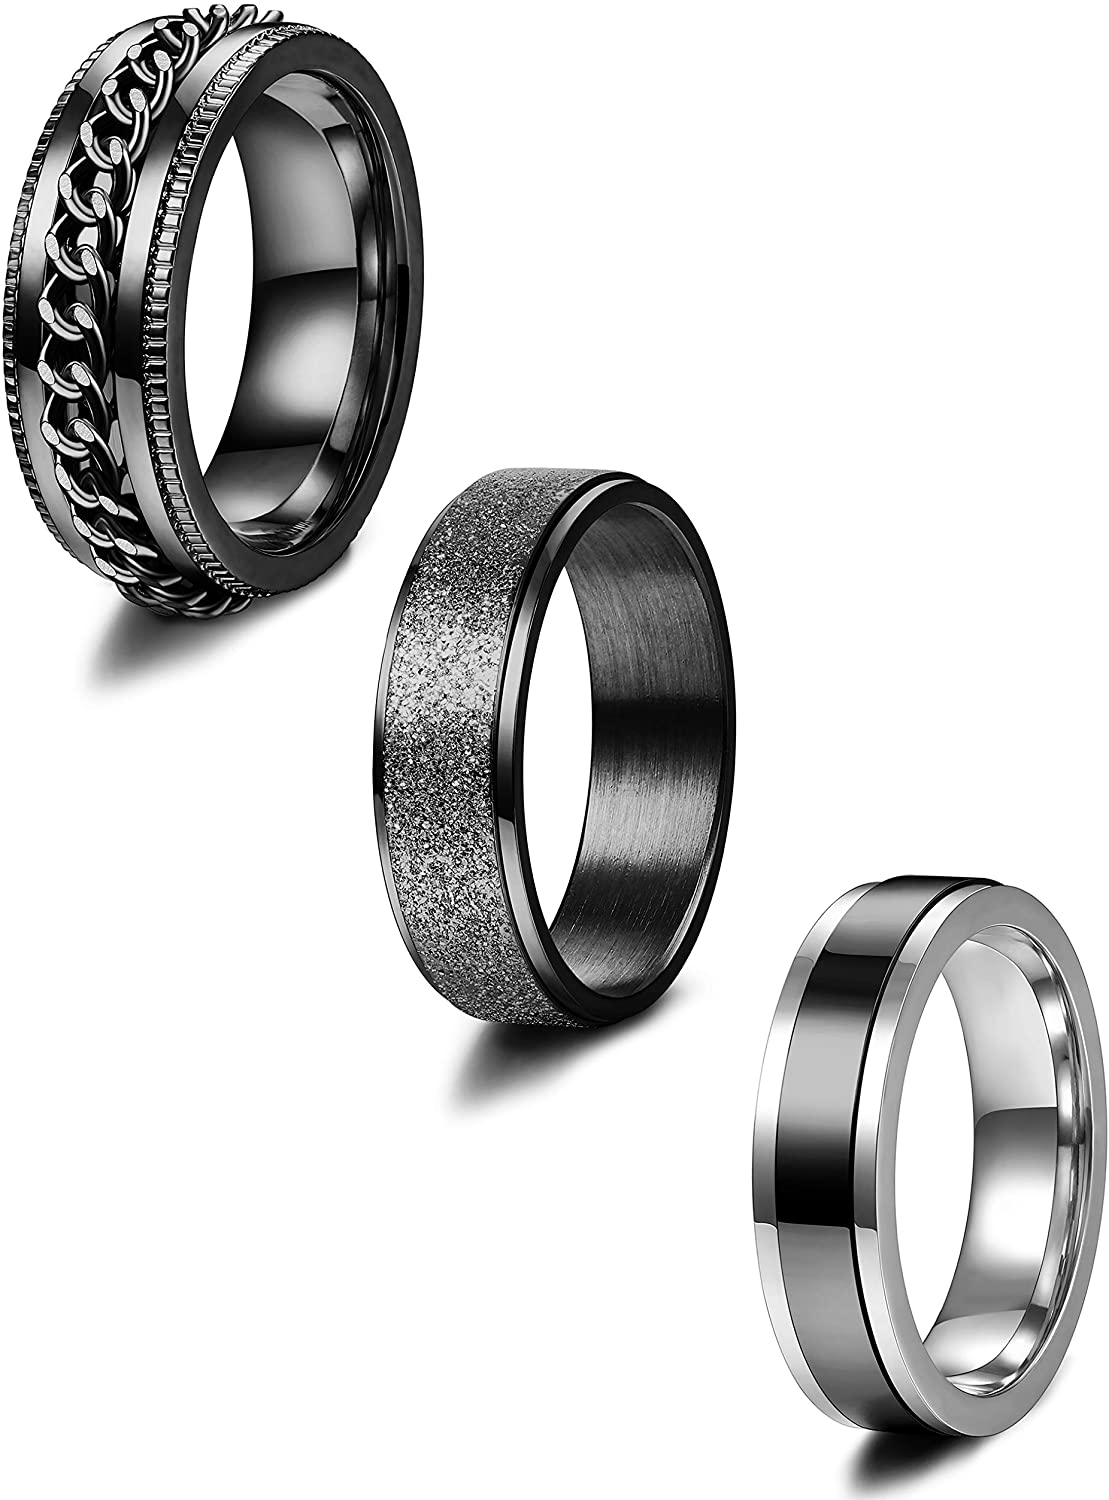 JAJAFOOK 2PCS//PACK Stainless Steel Couple Rings For His and Hers Promise Mathching Jewelry Set Black /& Rose Gold Tone